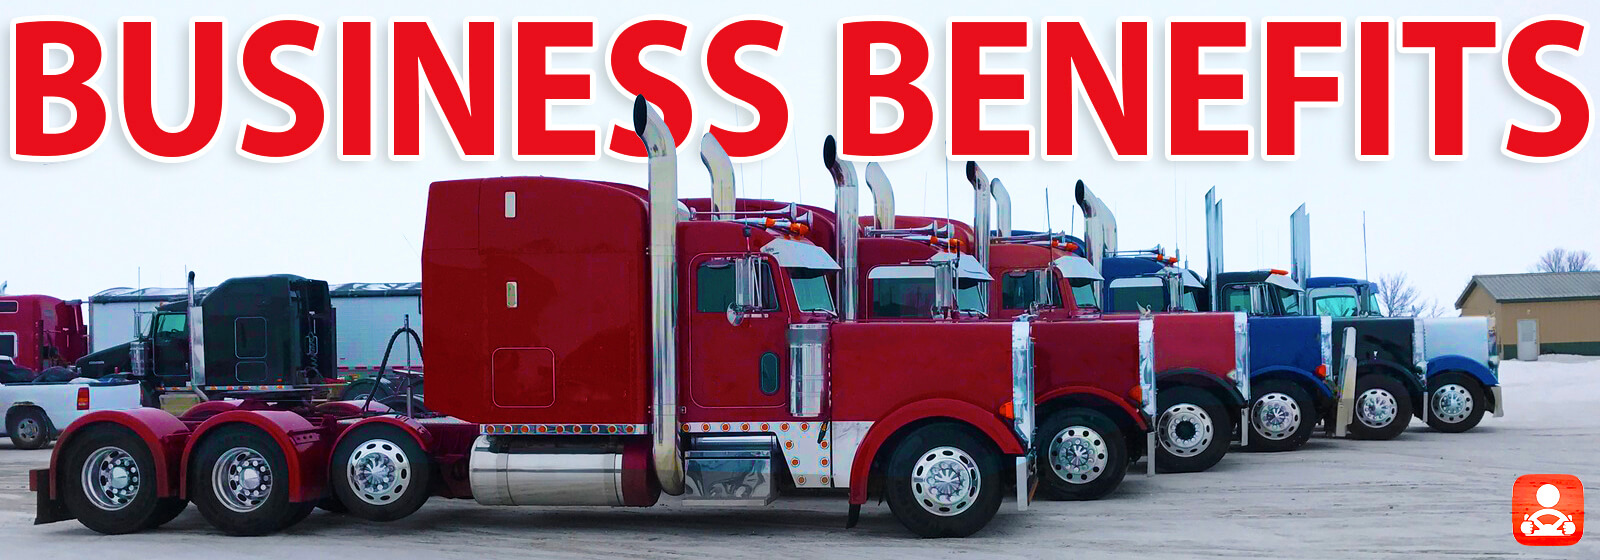 cdl check with your business4.jpg